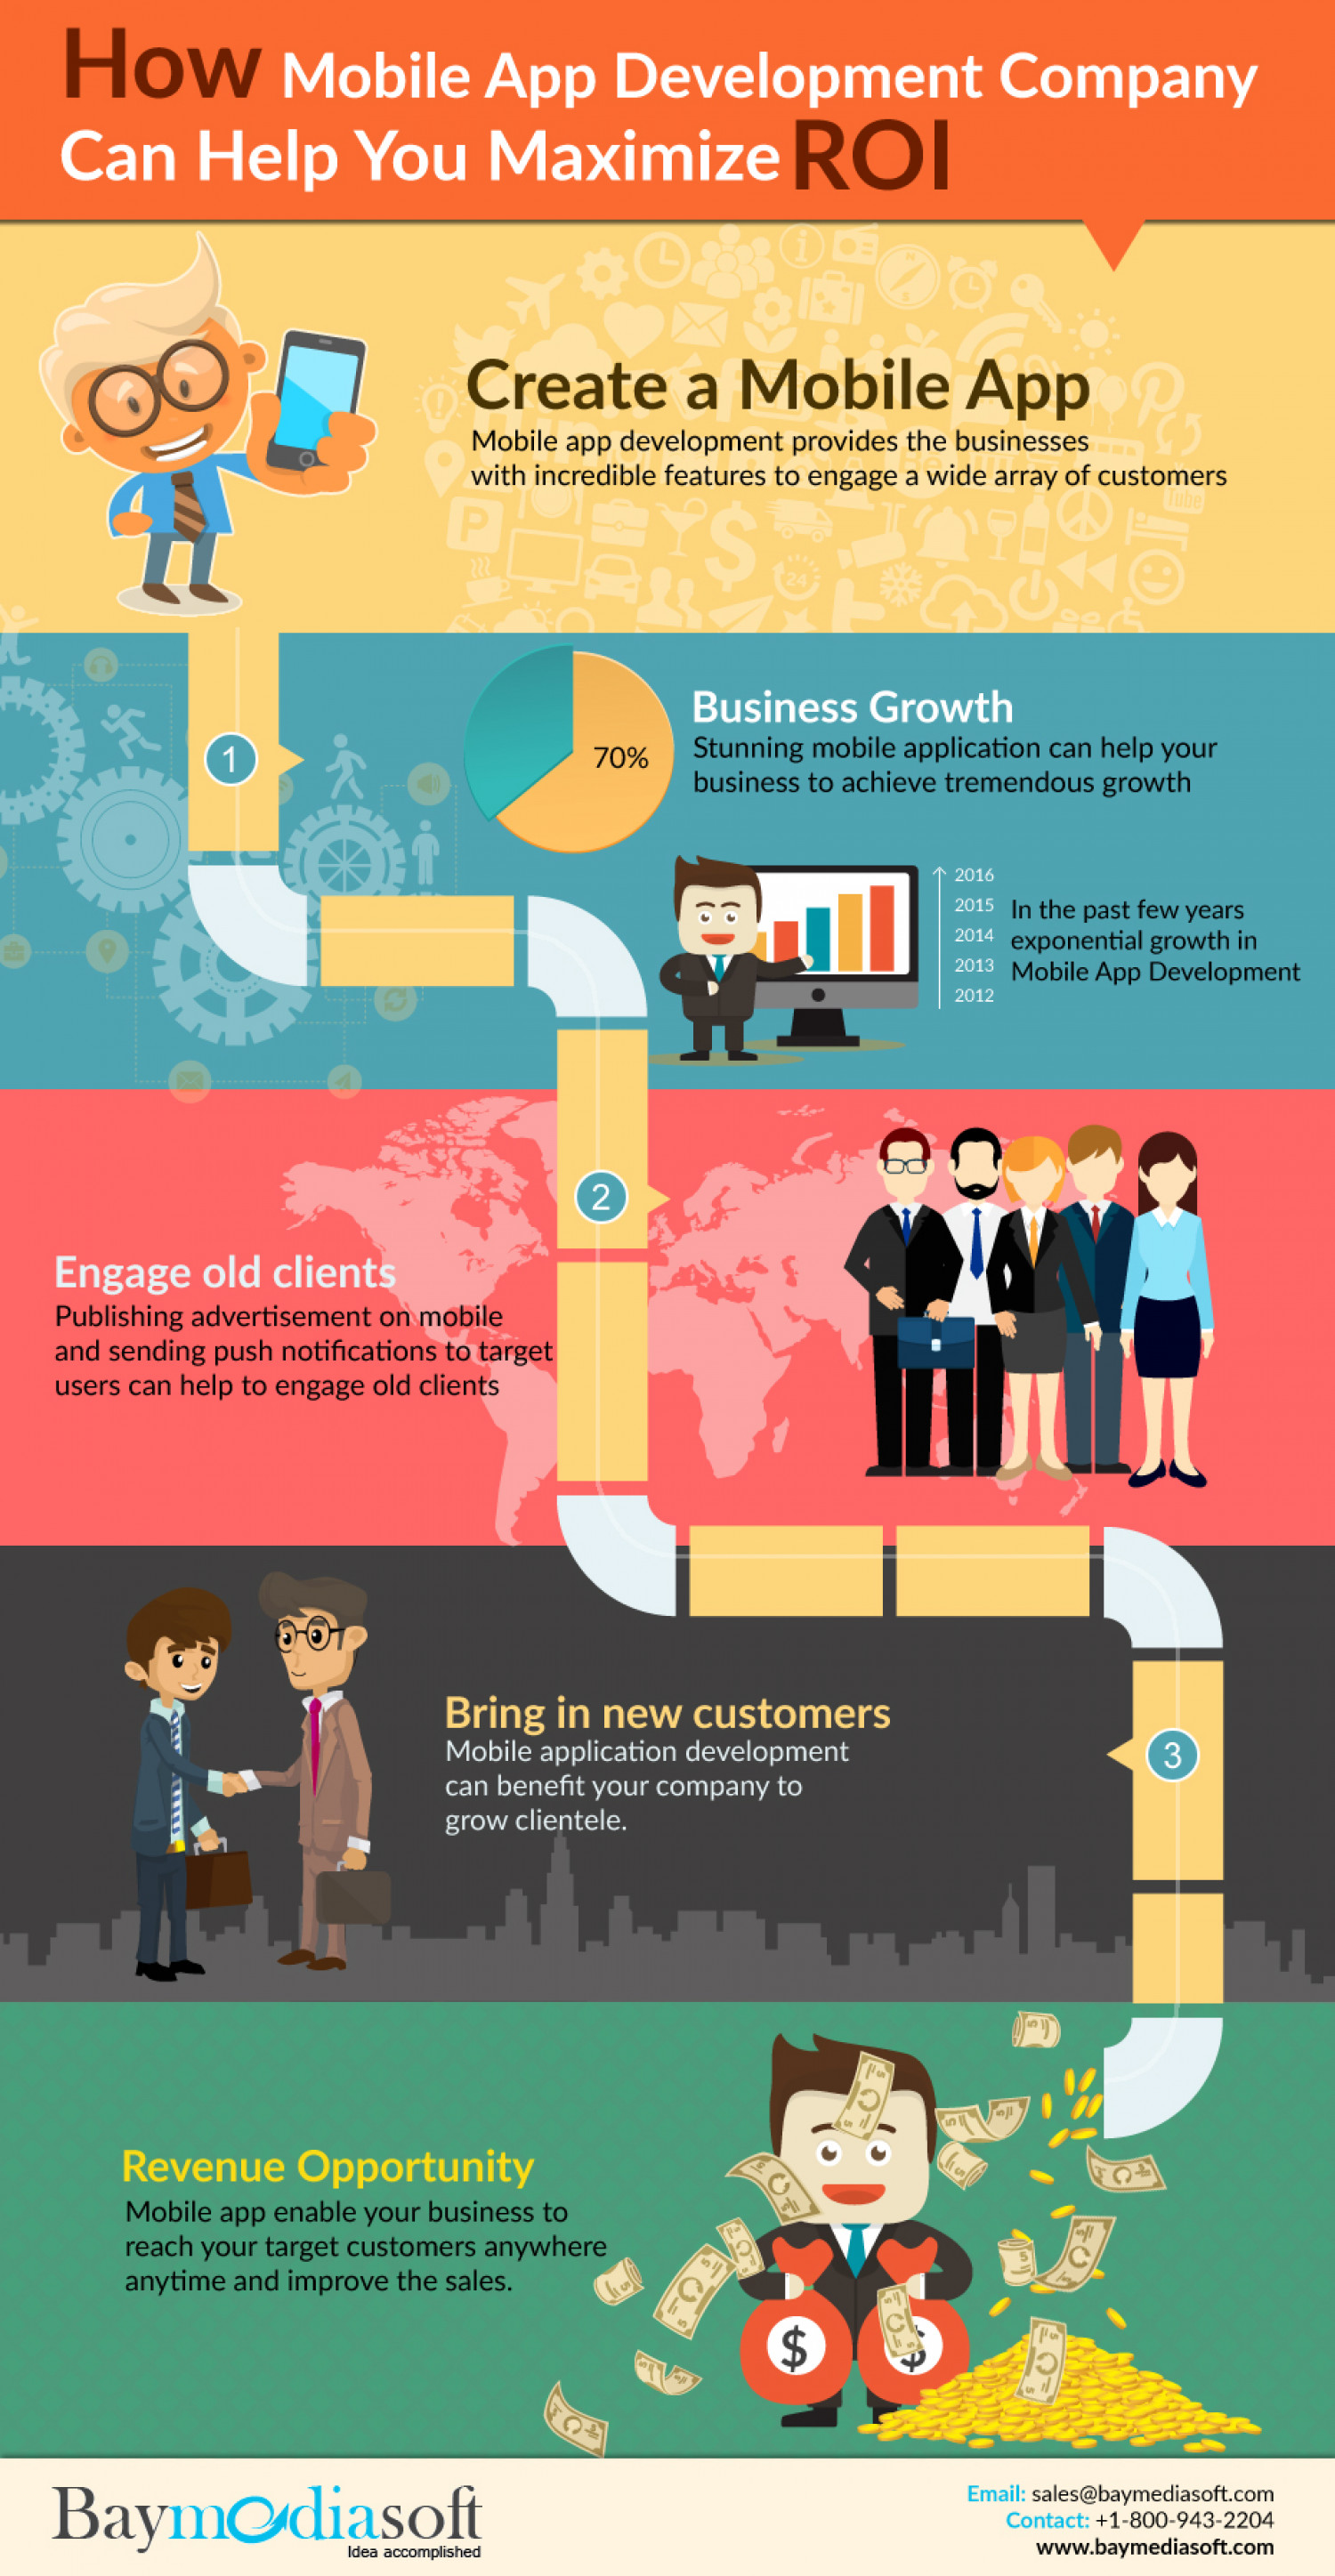 How Mobile App Development Company Can Help You Maximize ROI Infographic